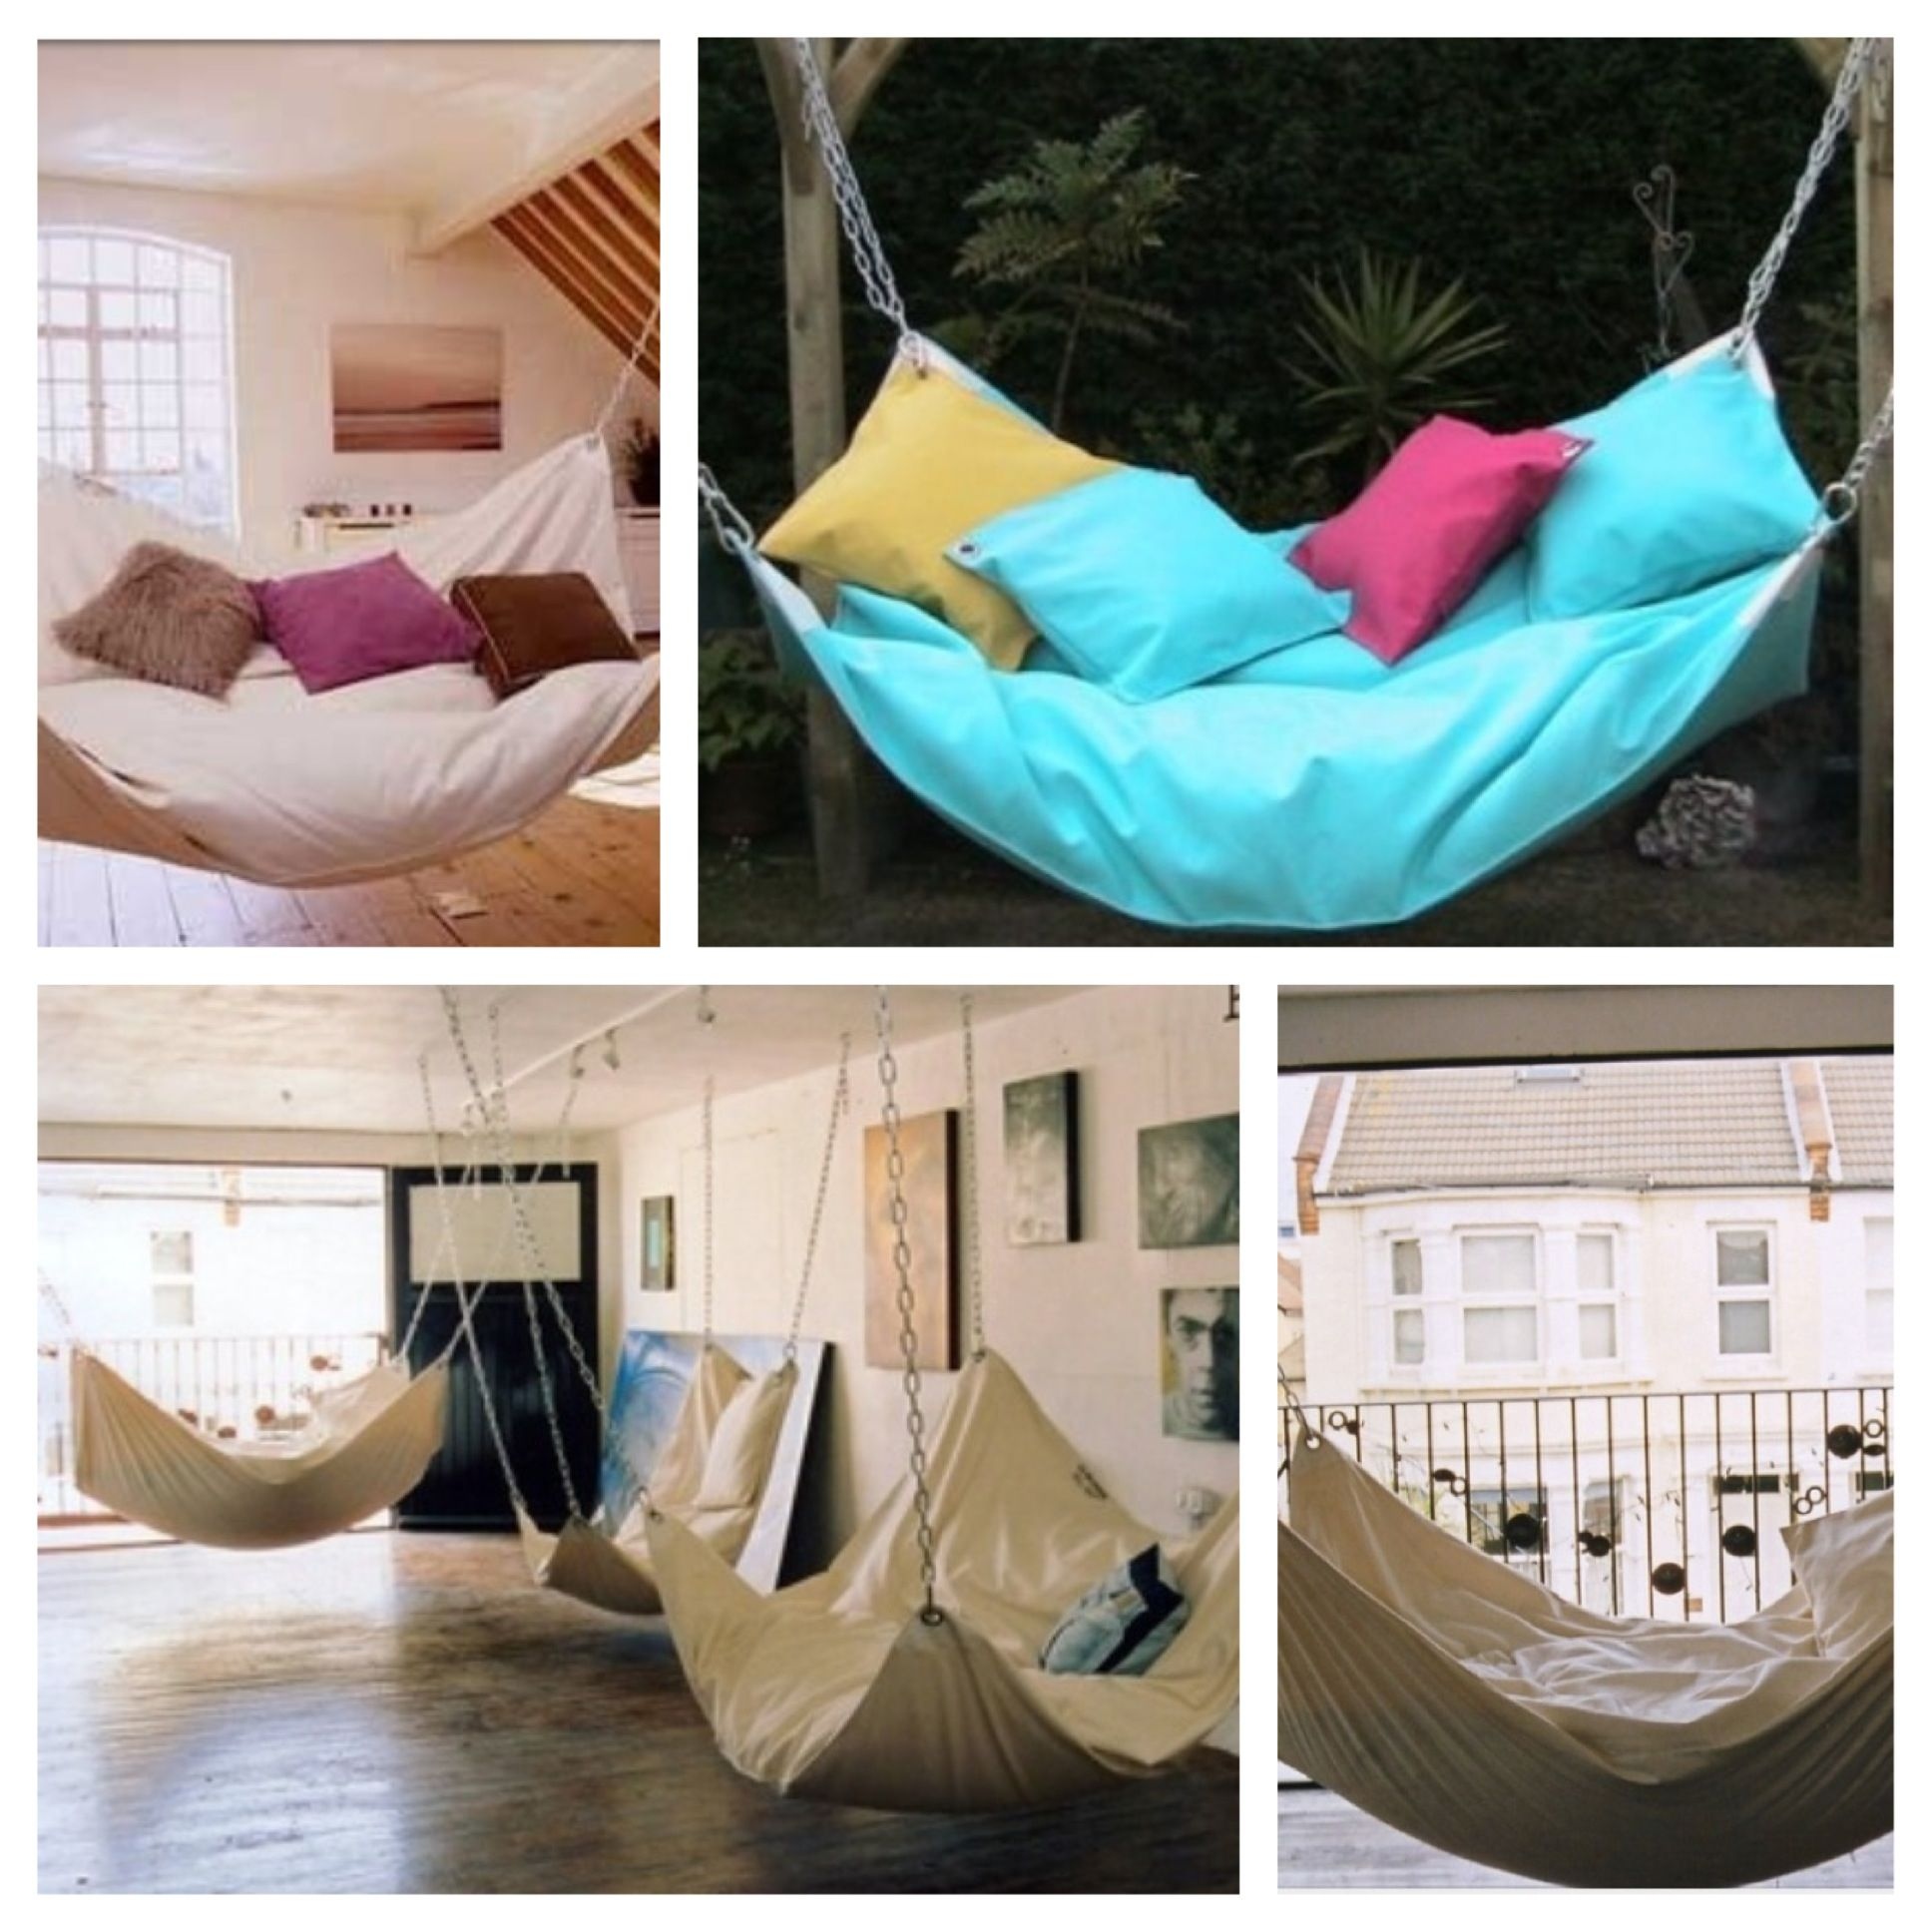 awesome  beanbag hammock u003d beanock my balcony is calling for one  awesome  beanbag hammock u003d beanock my balcony is calling for one      rh   pinterest